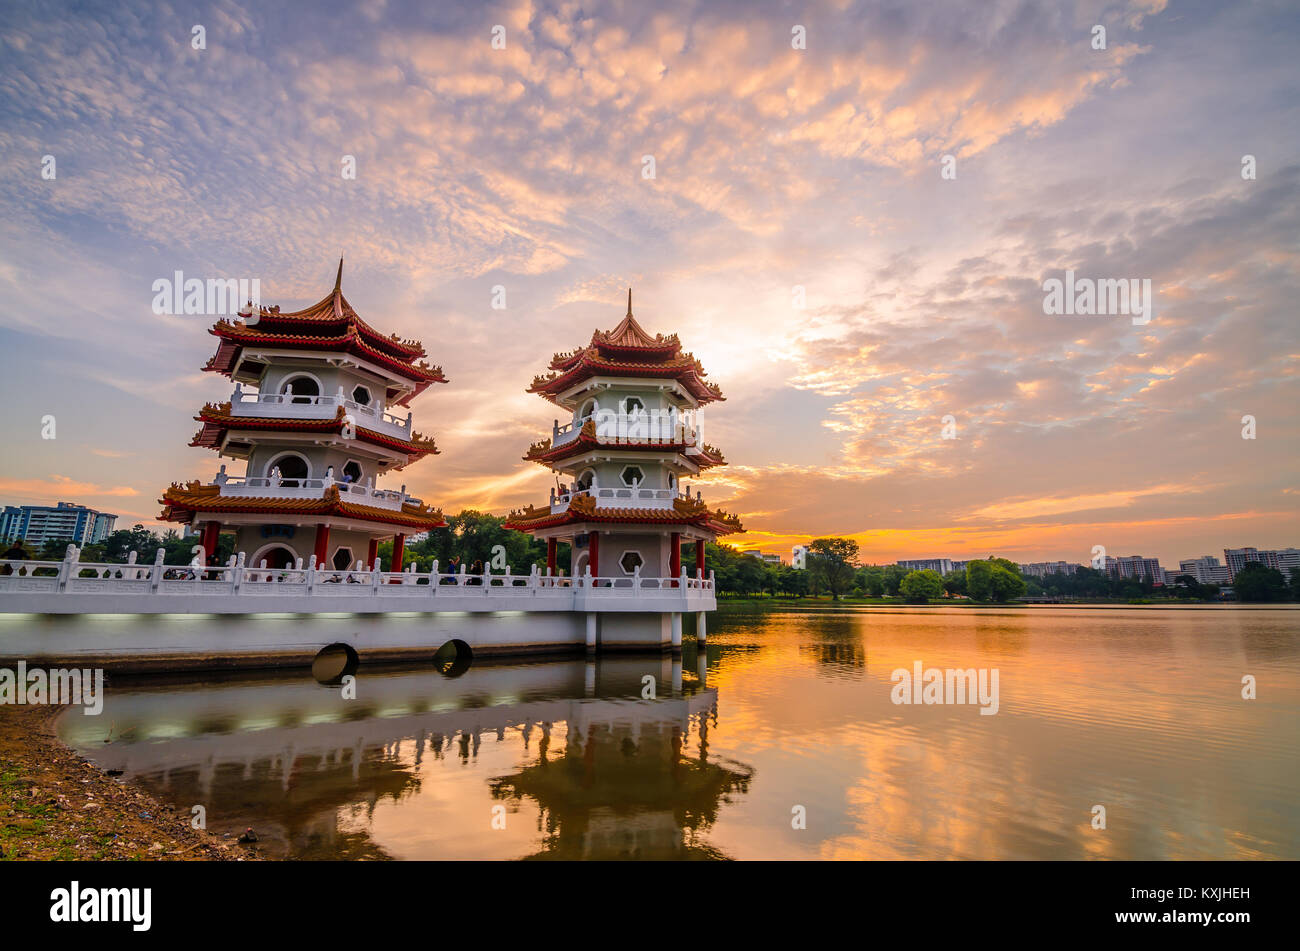 Beautiful sunset at Singapore Chinese Garden, a public park in Jurong East, Singapore. Designed by an architect - Stock Image